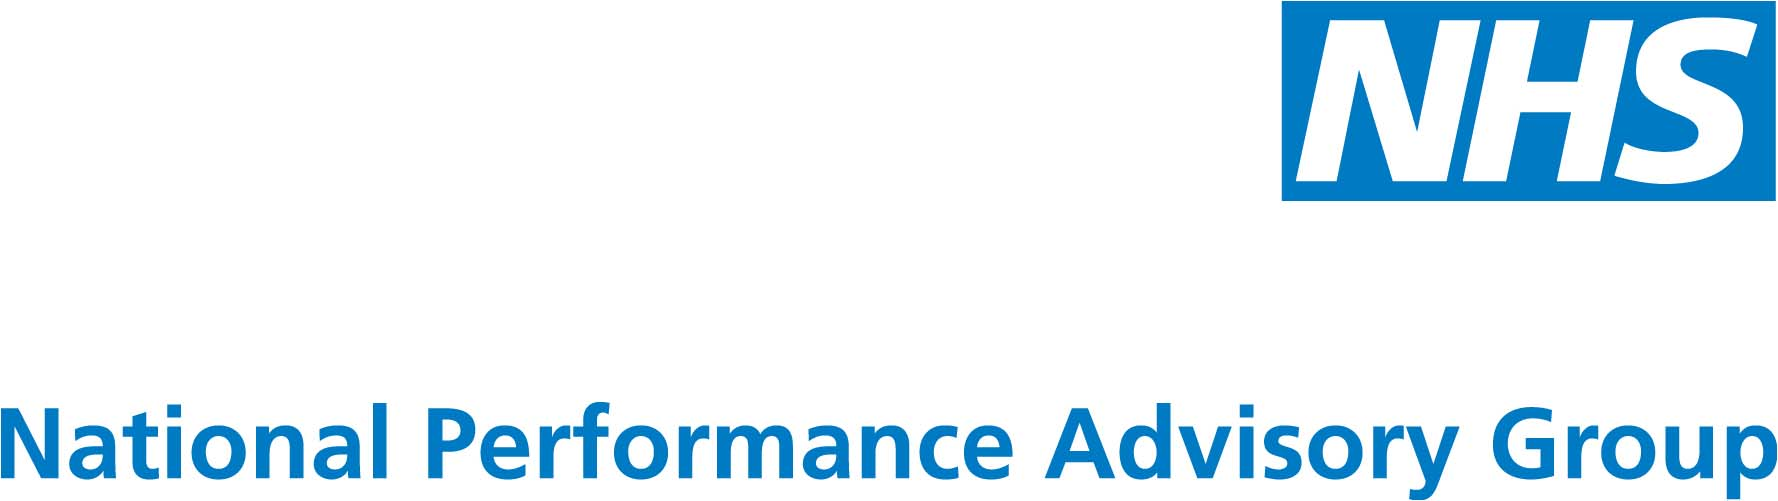 Logo for the National Performance Advisory Group